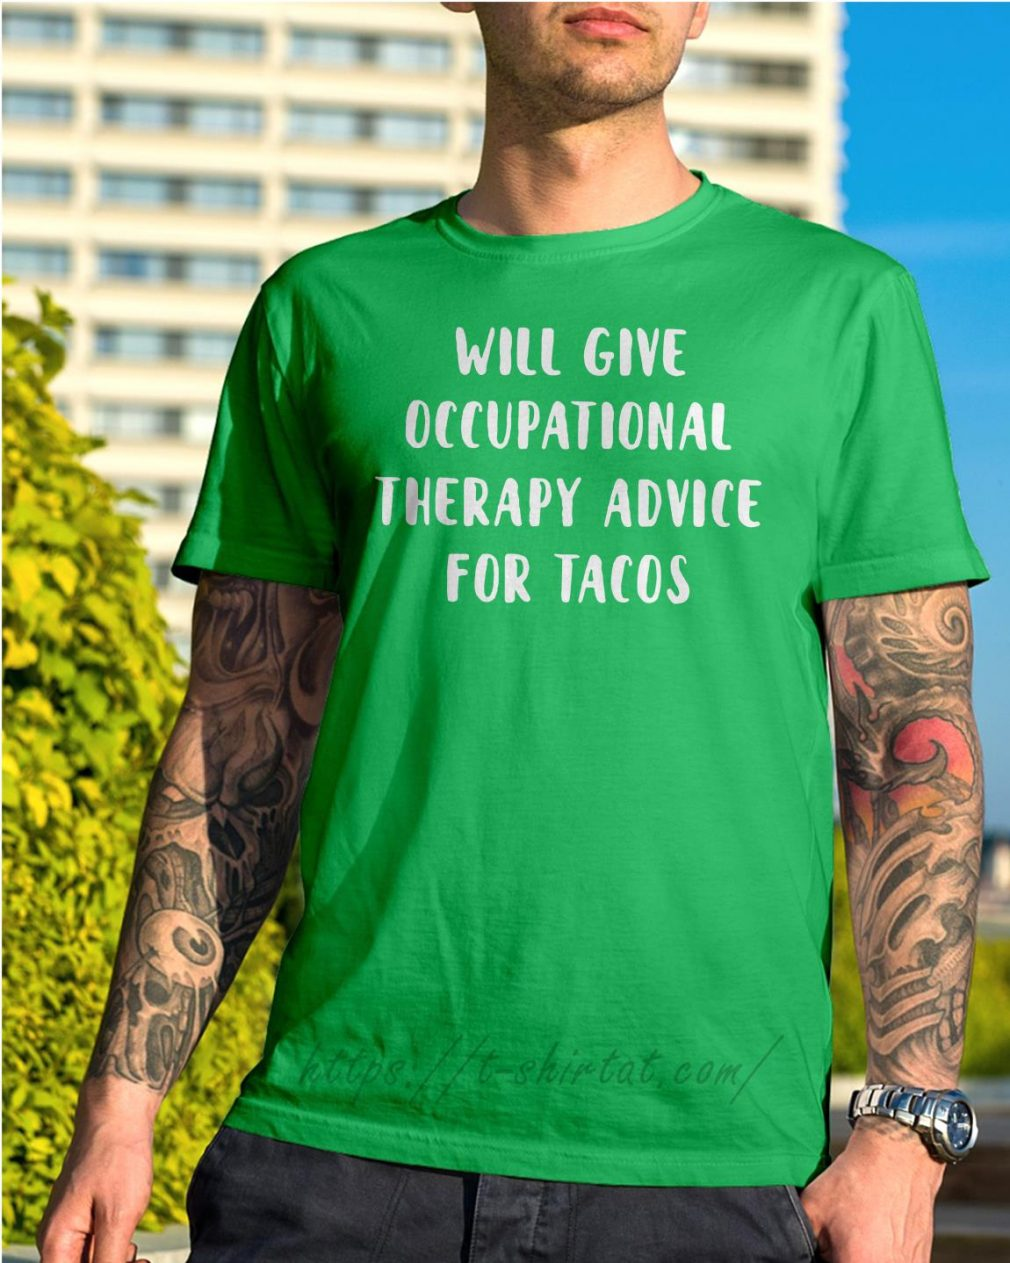 Will give occupational therapy advice for tacos Shirt green